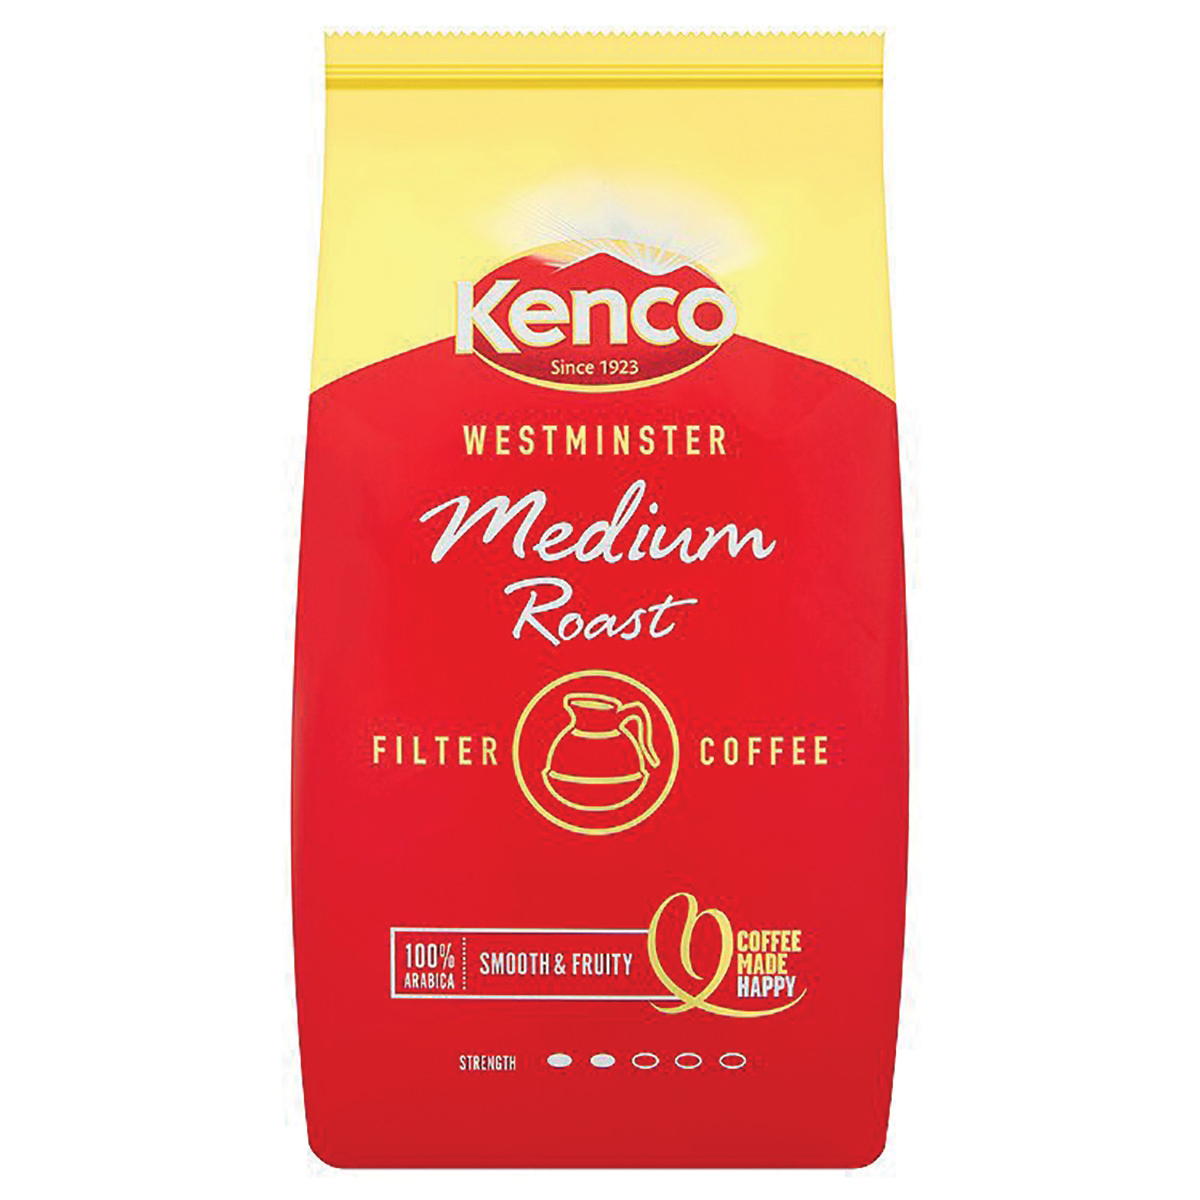 Coffee Kenco Westminster Ground Coffee for Filter Medium Roast 1Kg Ref 4032279